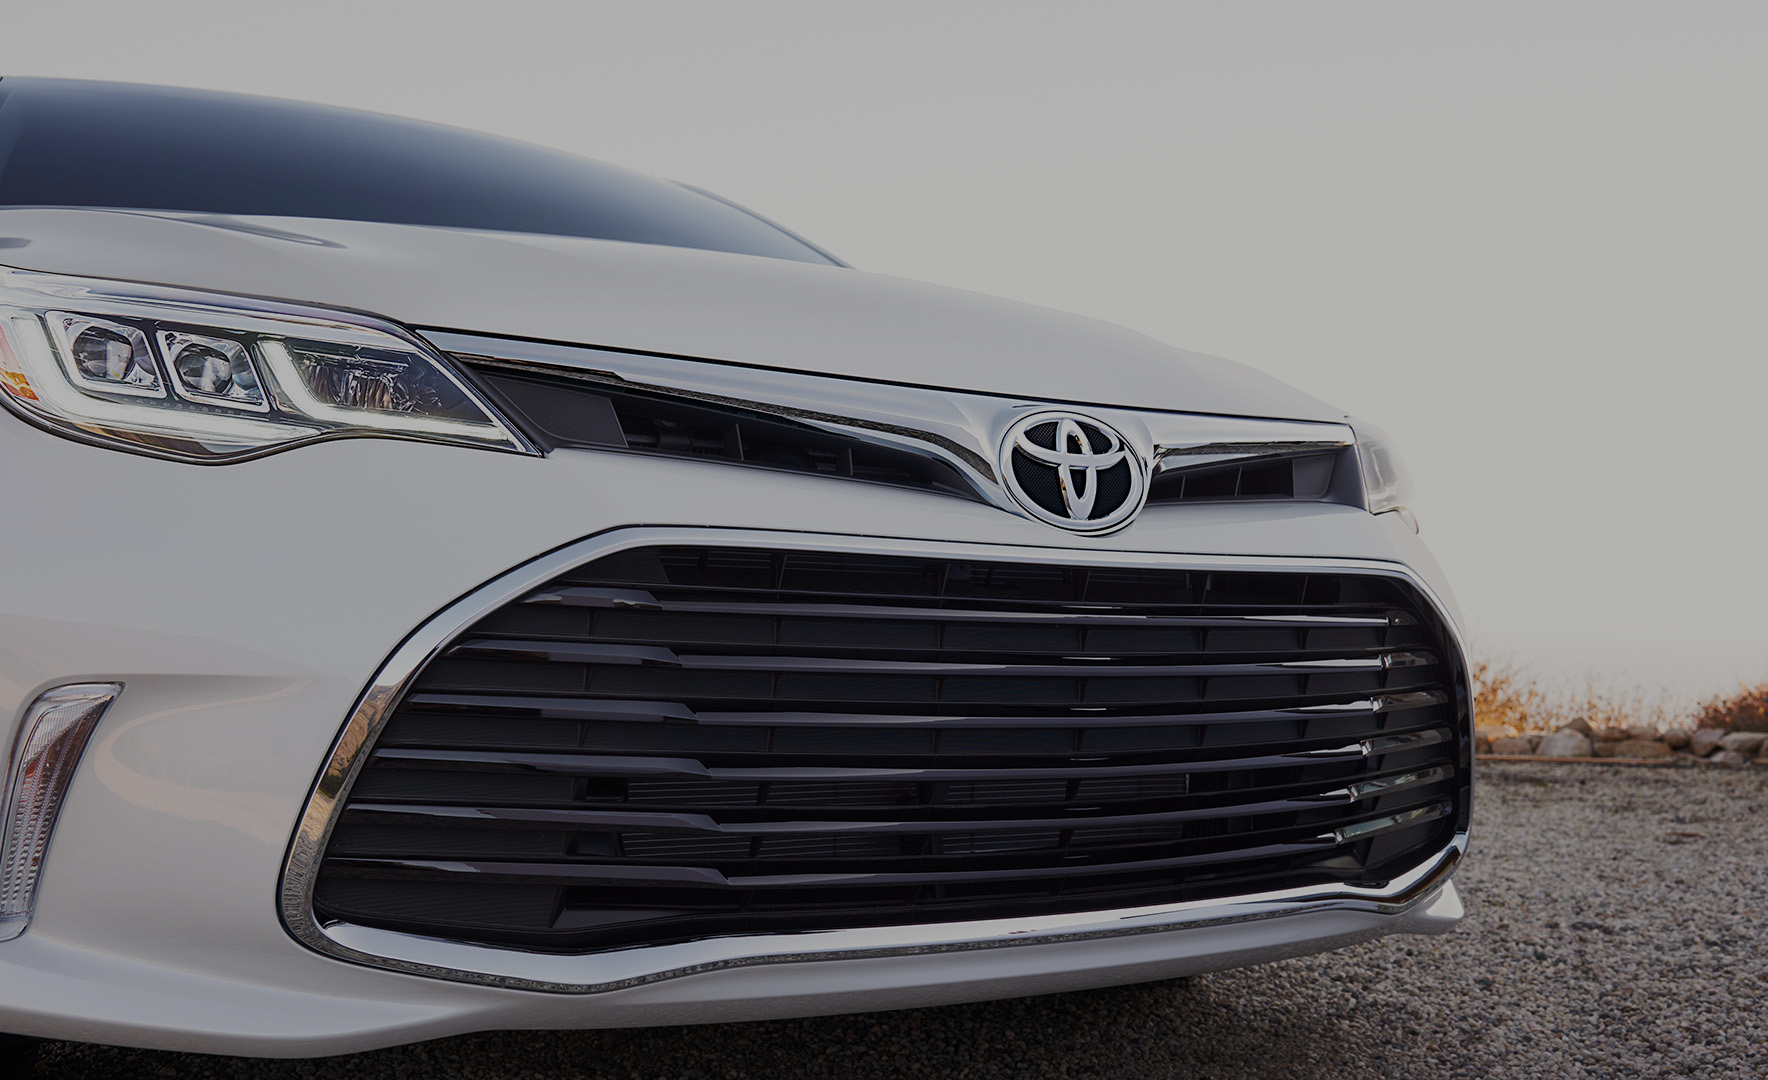 2016 Toyota Avalon Hybrid performance